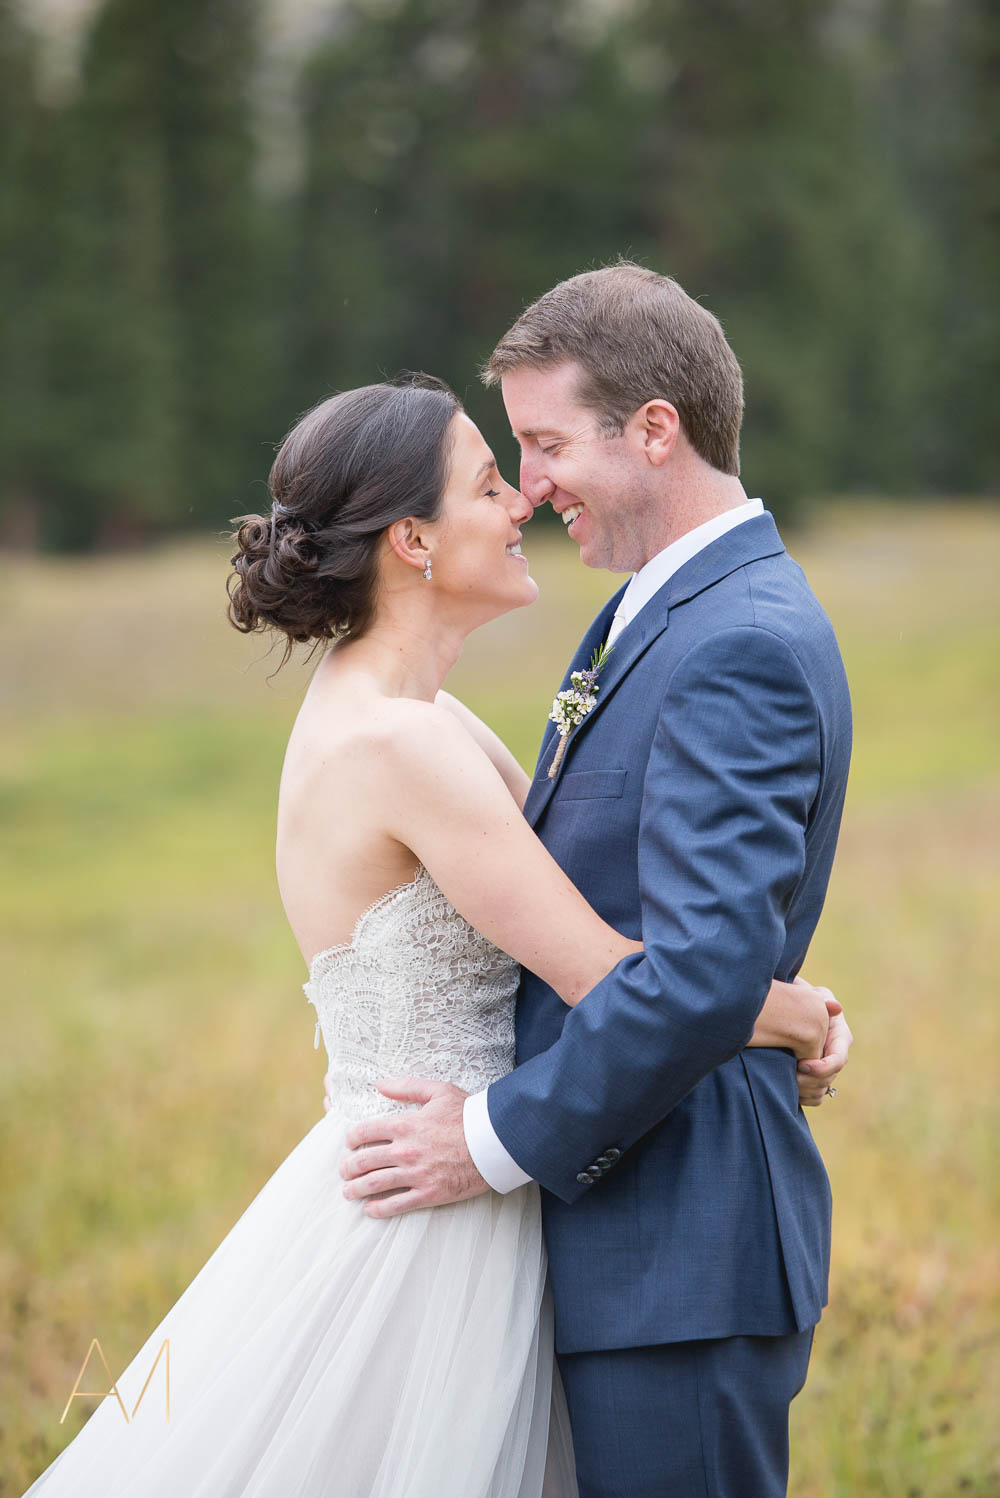 AshleighMillerWeddings-JennyAllen-ArapahoeBasin-Keystone-Colorado-2772.jpg